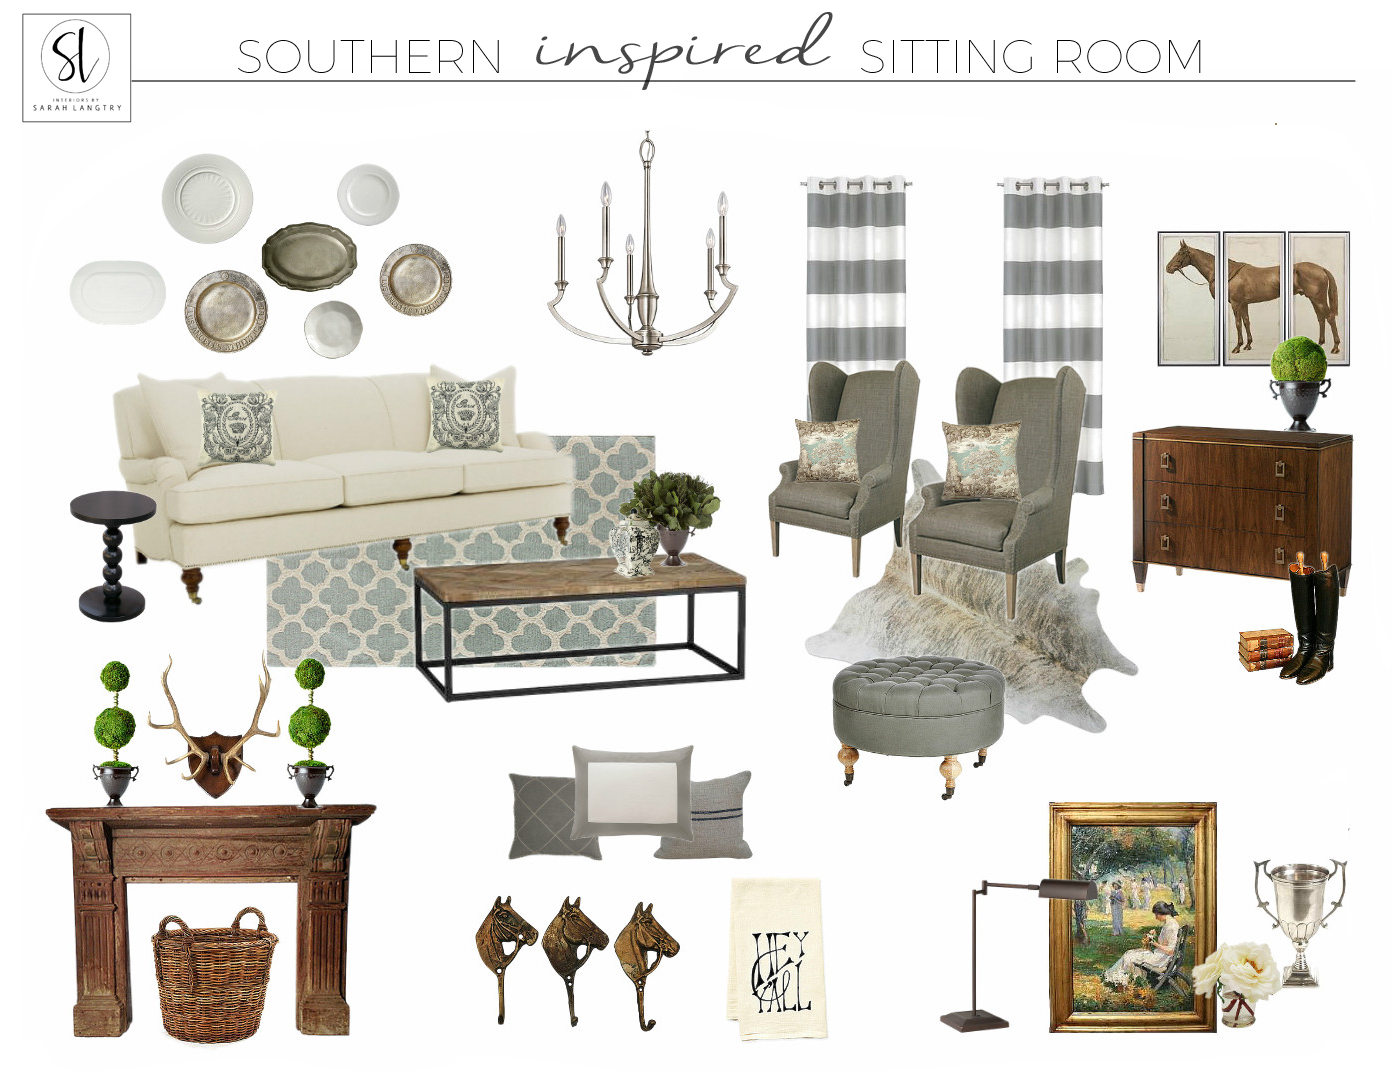 Southern Charm Sitting Room